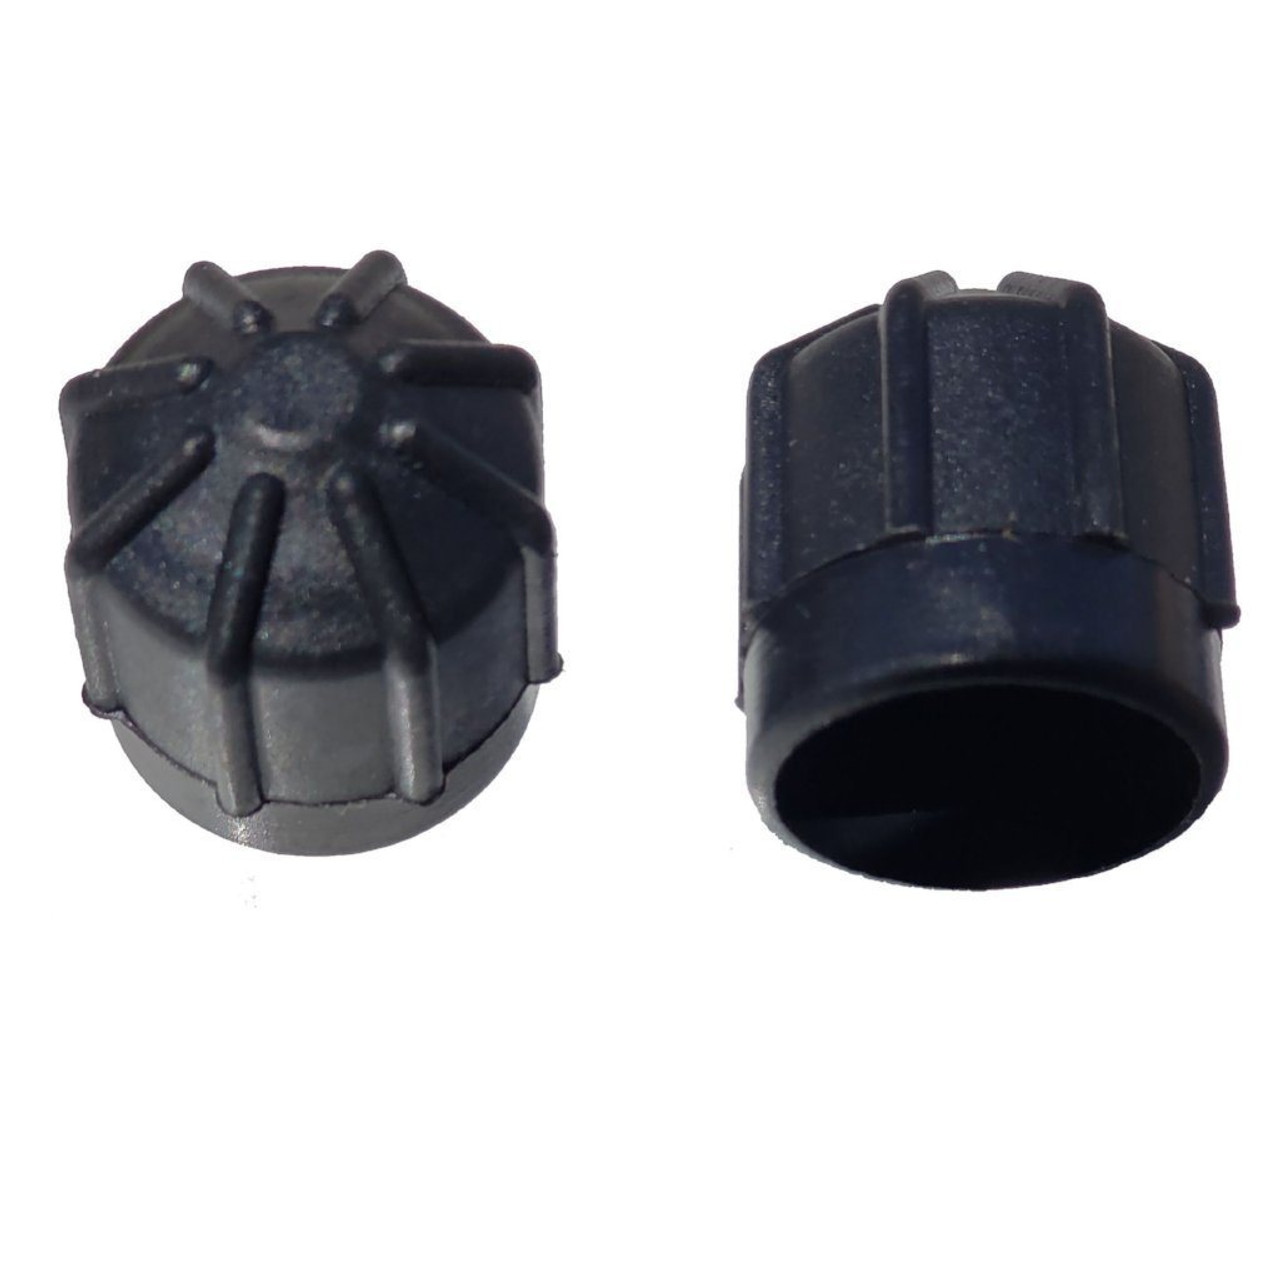 AC Service Port Cap Black - Interchanges:  BMW 64538387438, 64538390638, 66206004001